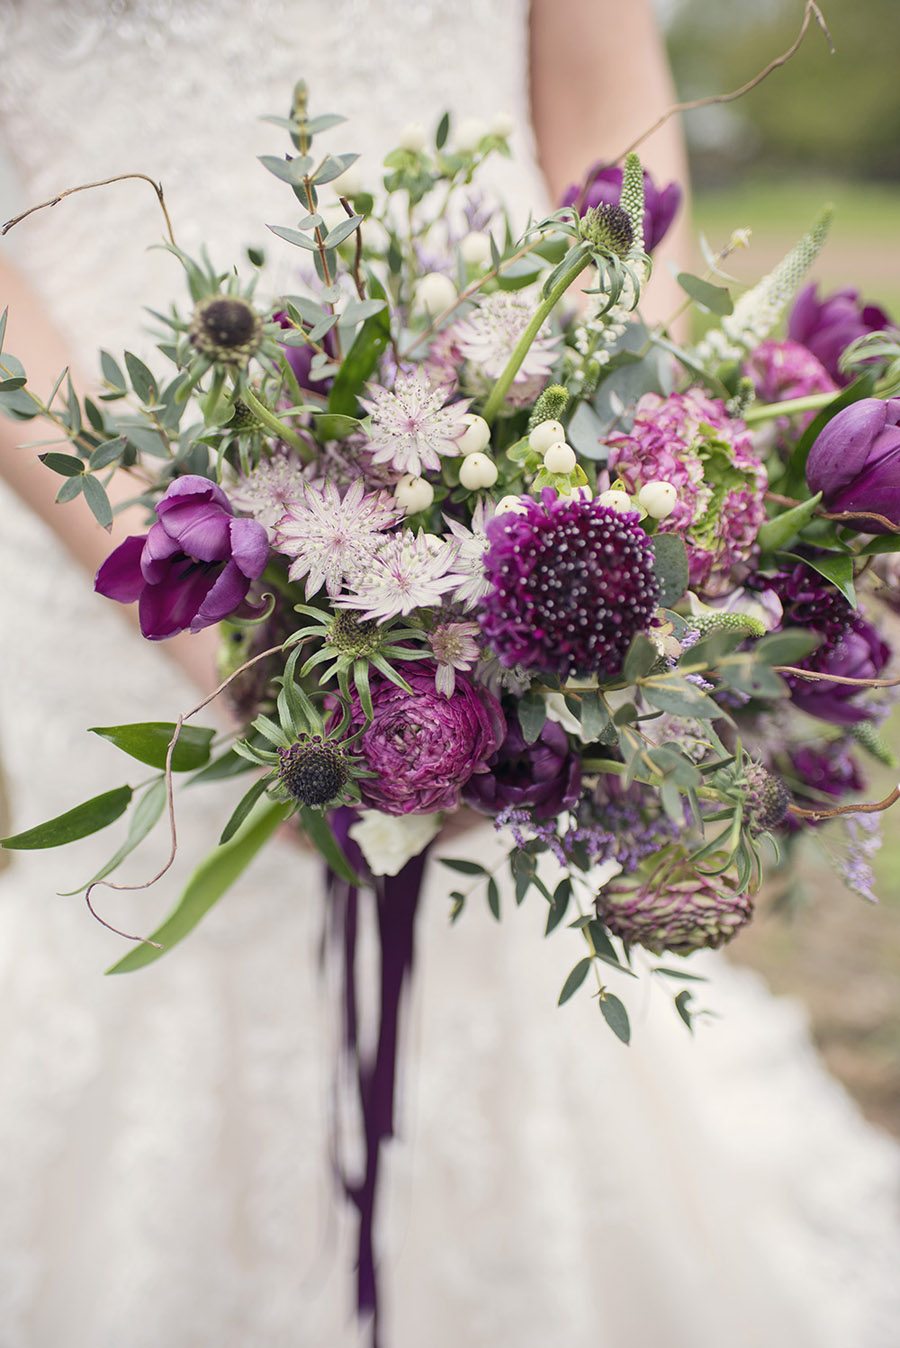 Gatsby vintage wedding at Crockwell Farm, images by Jodie Cooling Photography (17)